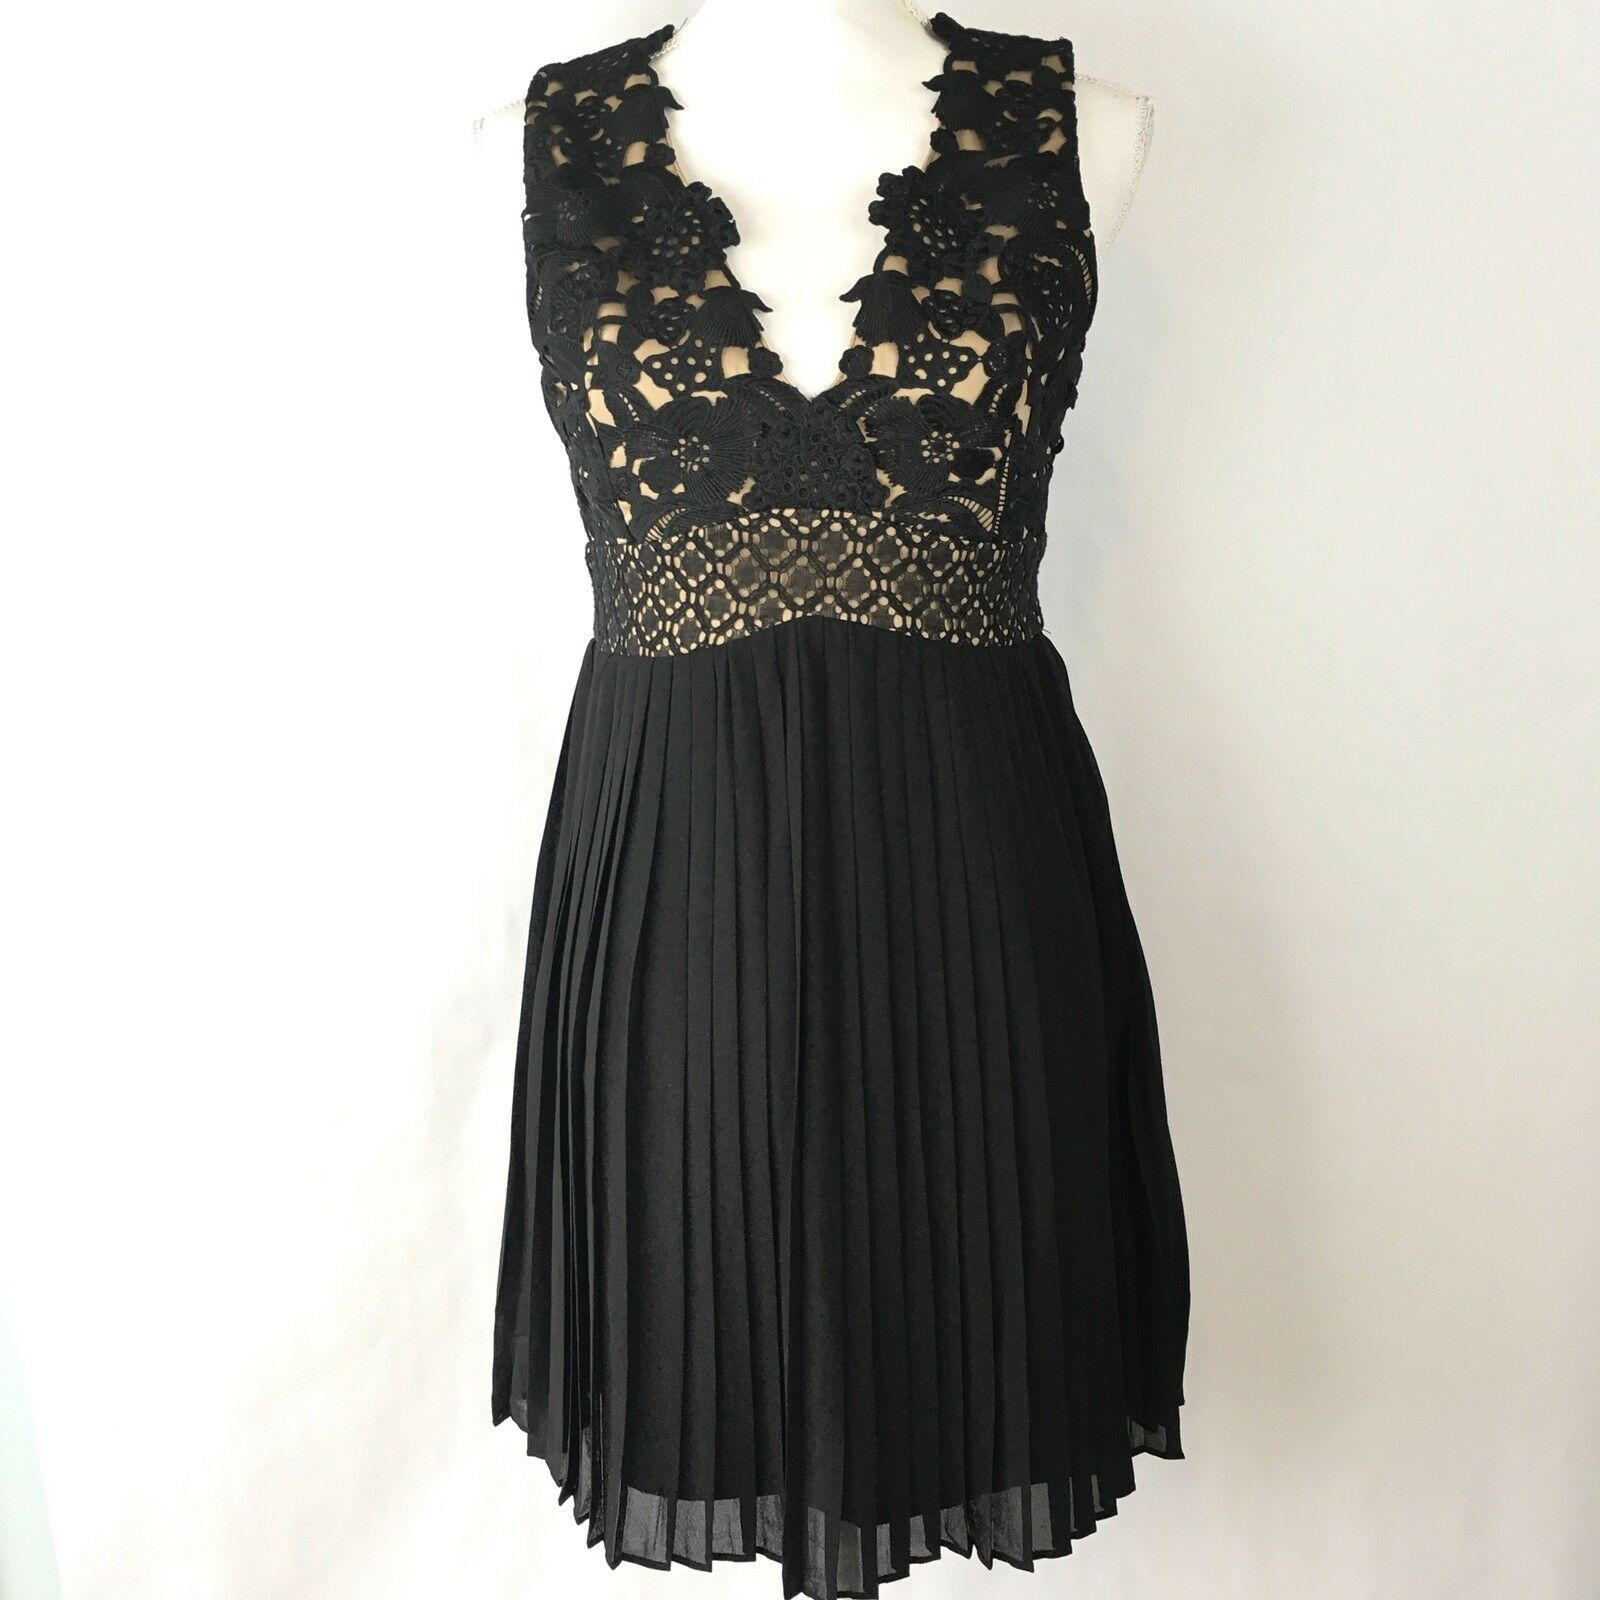 HEARTLOOM Woherren Cocktail Dress Größe S schwarz Illusion Lace Pleated Skirt NWT